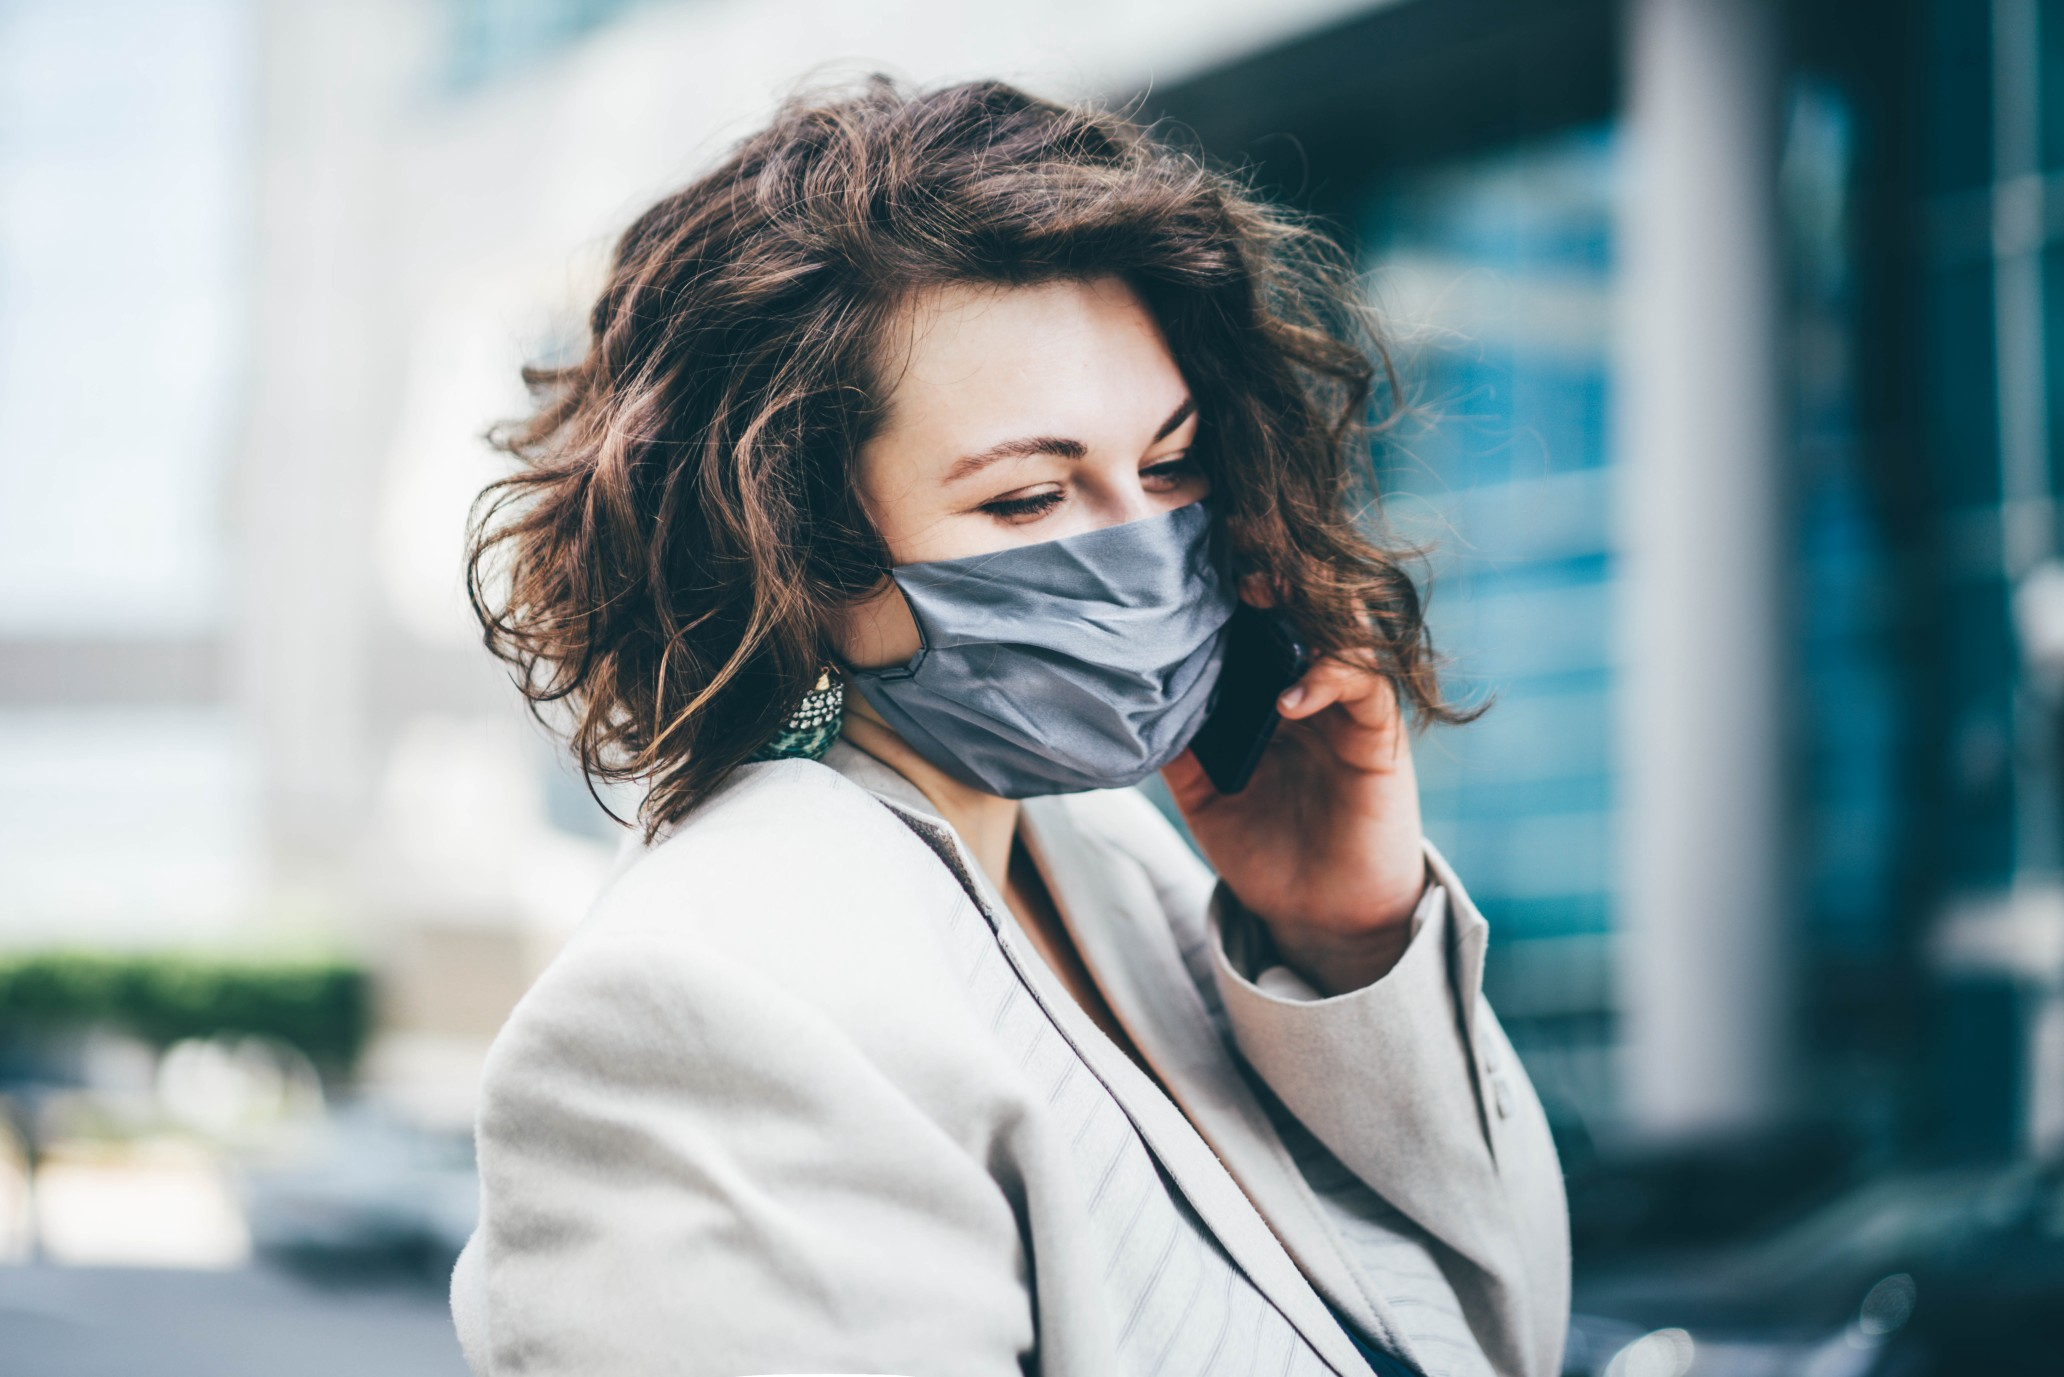 A stylish woman with short brown hair smiles behind a mask in the city.